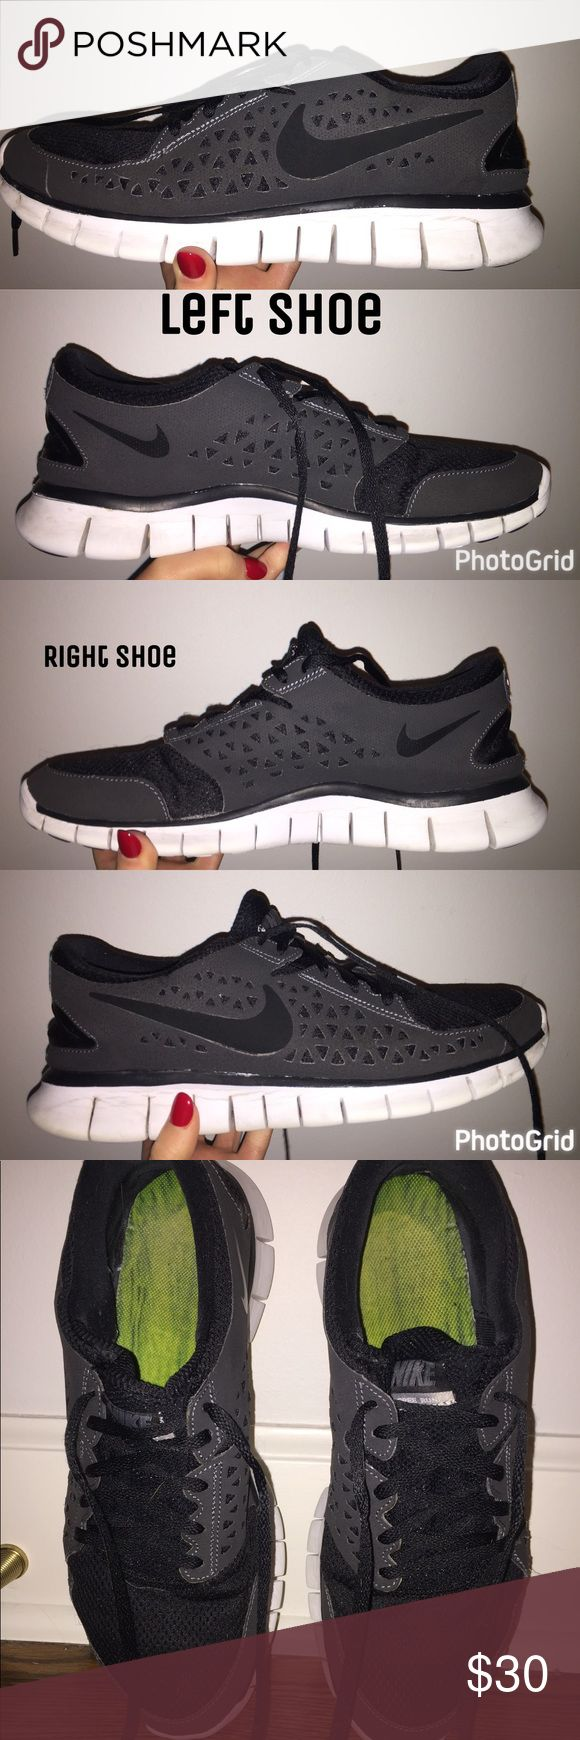 Men's Nike Sneakers Black and white men's Nike tennis shoes!! In great condition!! No tears or stains, just some rocks and discoloration on the soles(might come off with a clorox wipe).  Just washed them in the washing machine. Great shoes :) make an offe